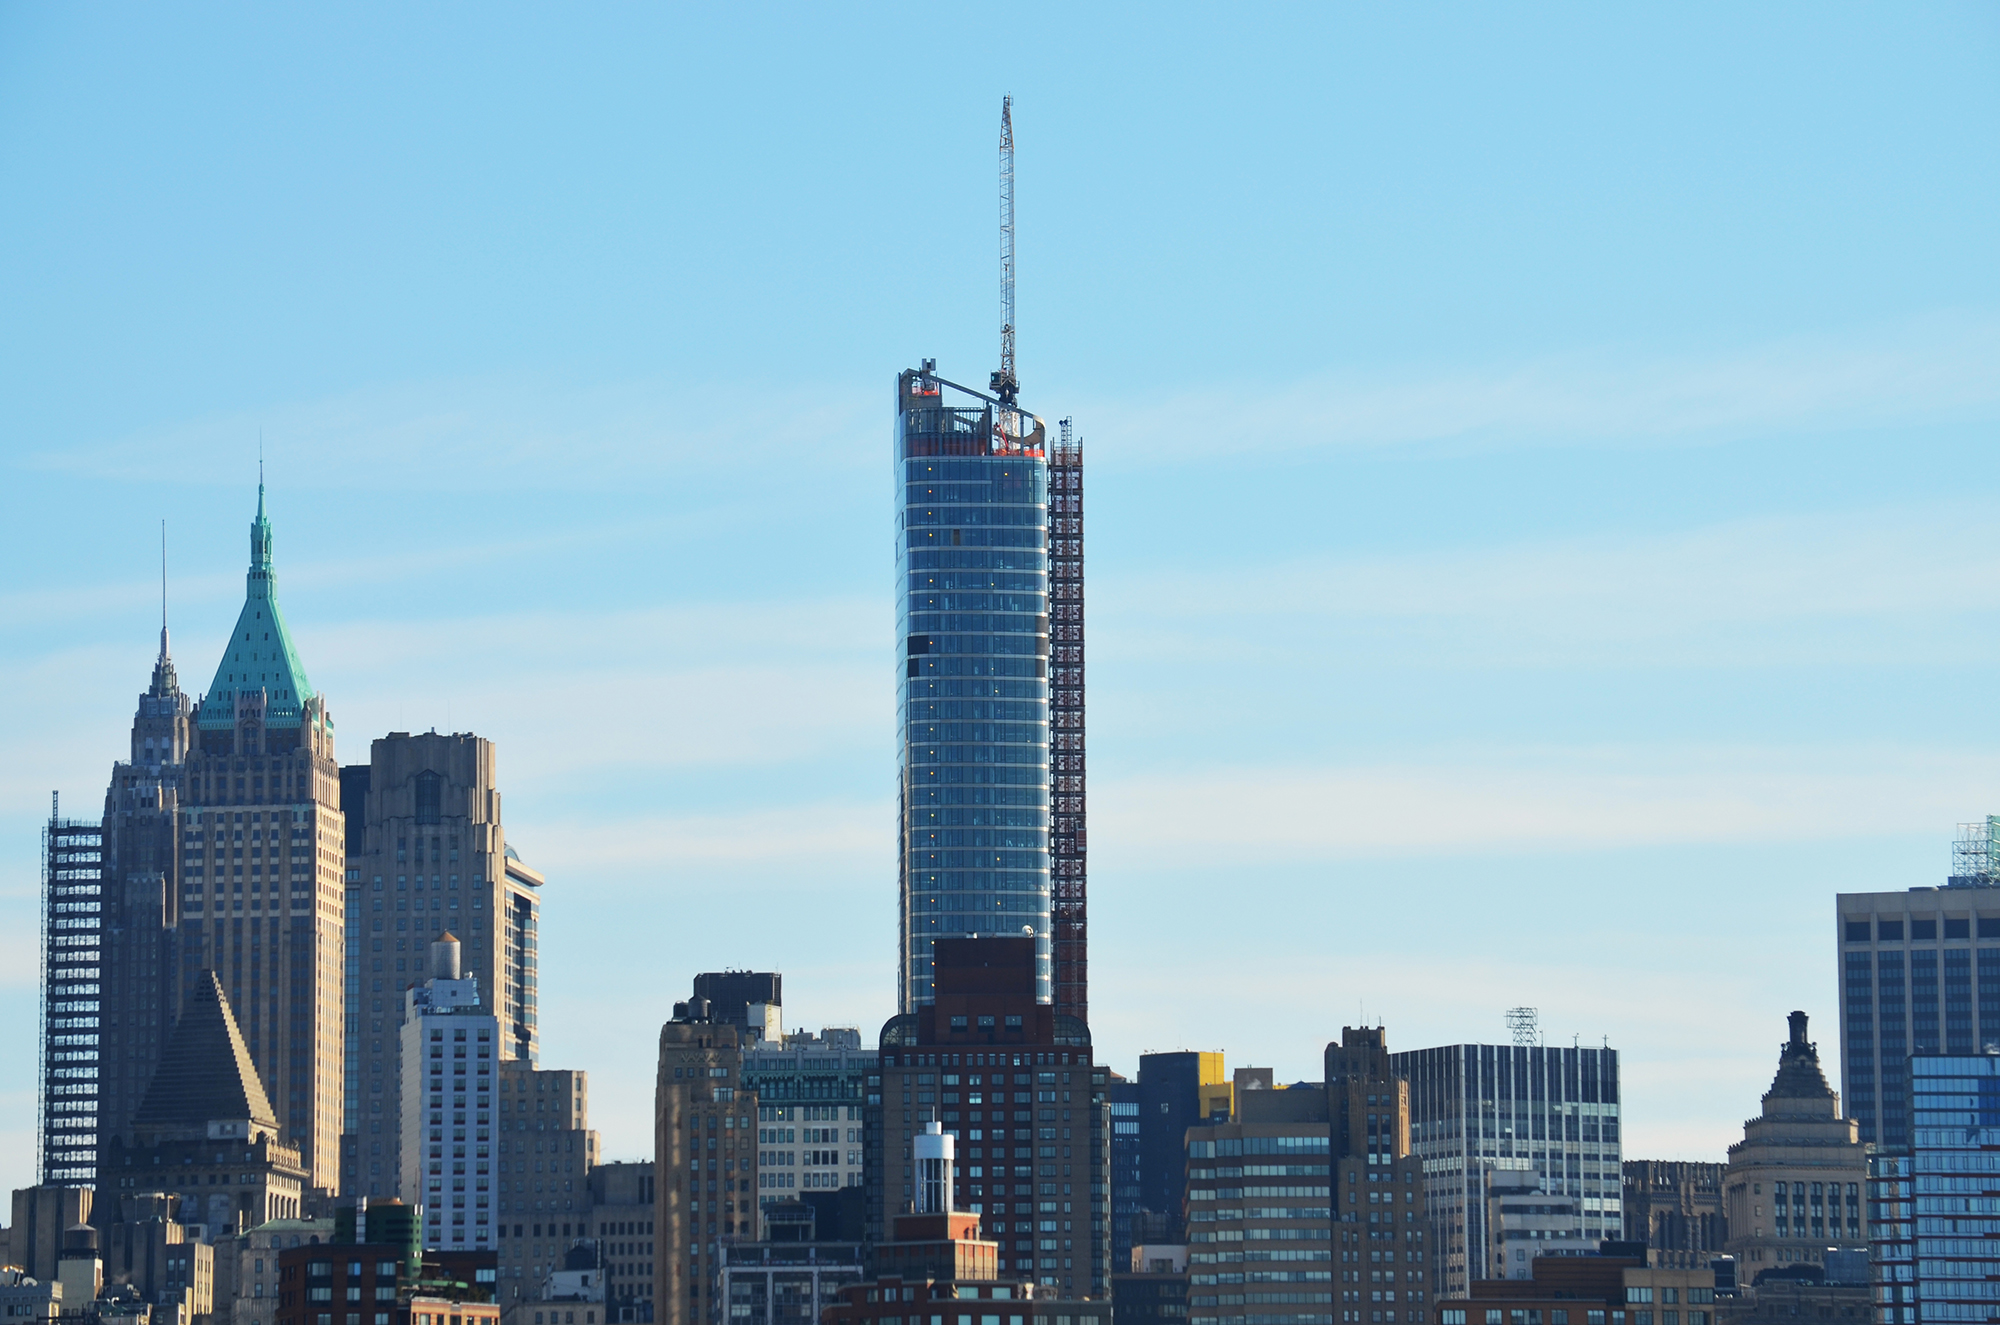 50 West Street as seen from Jersey City on January 28, 2016. Photo by Evan Bindelglass